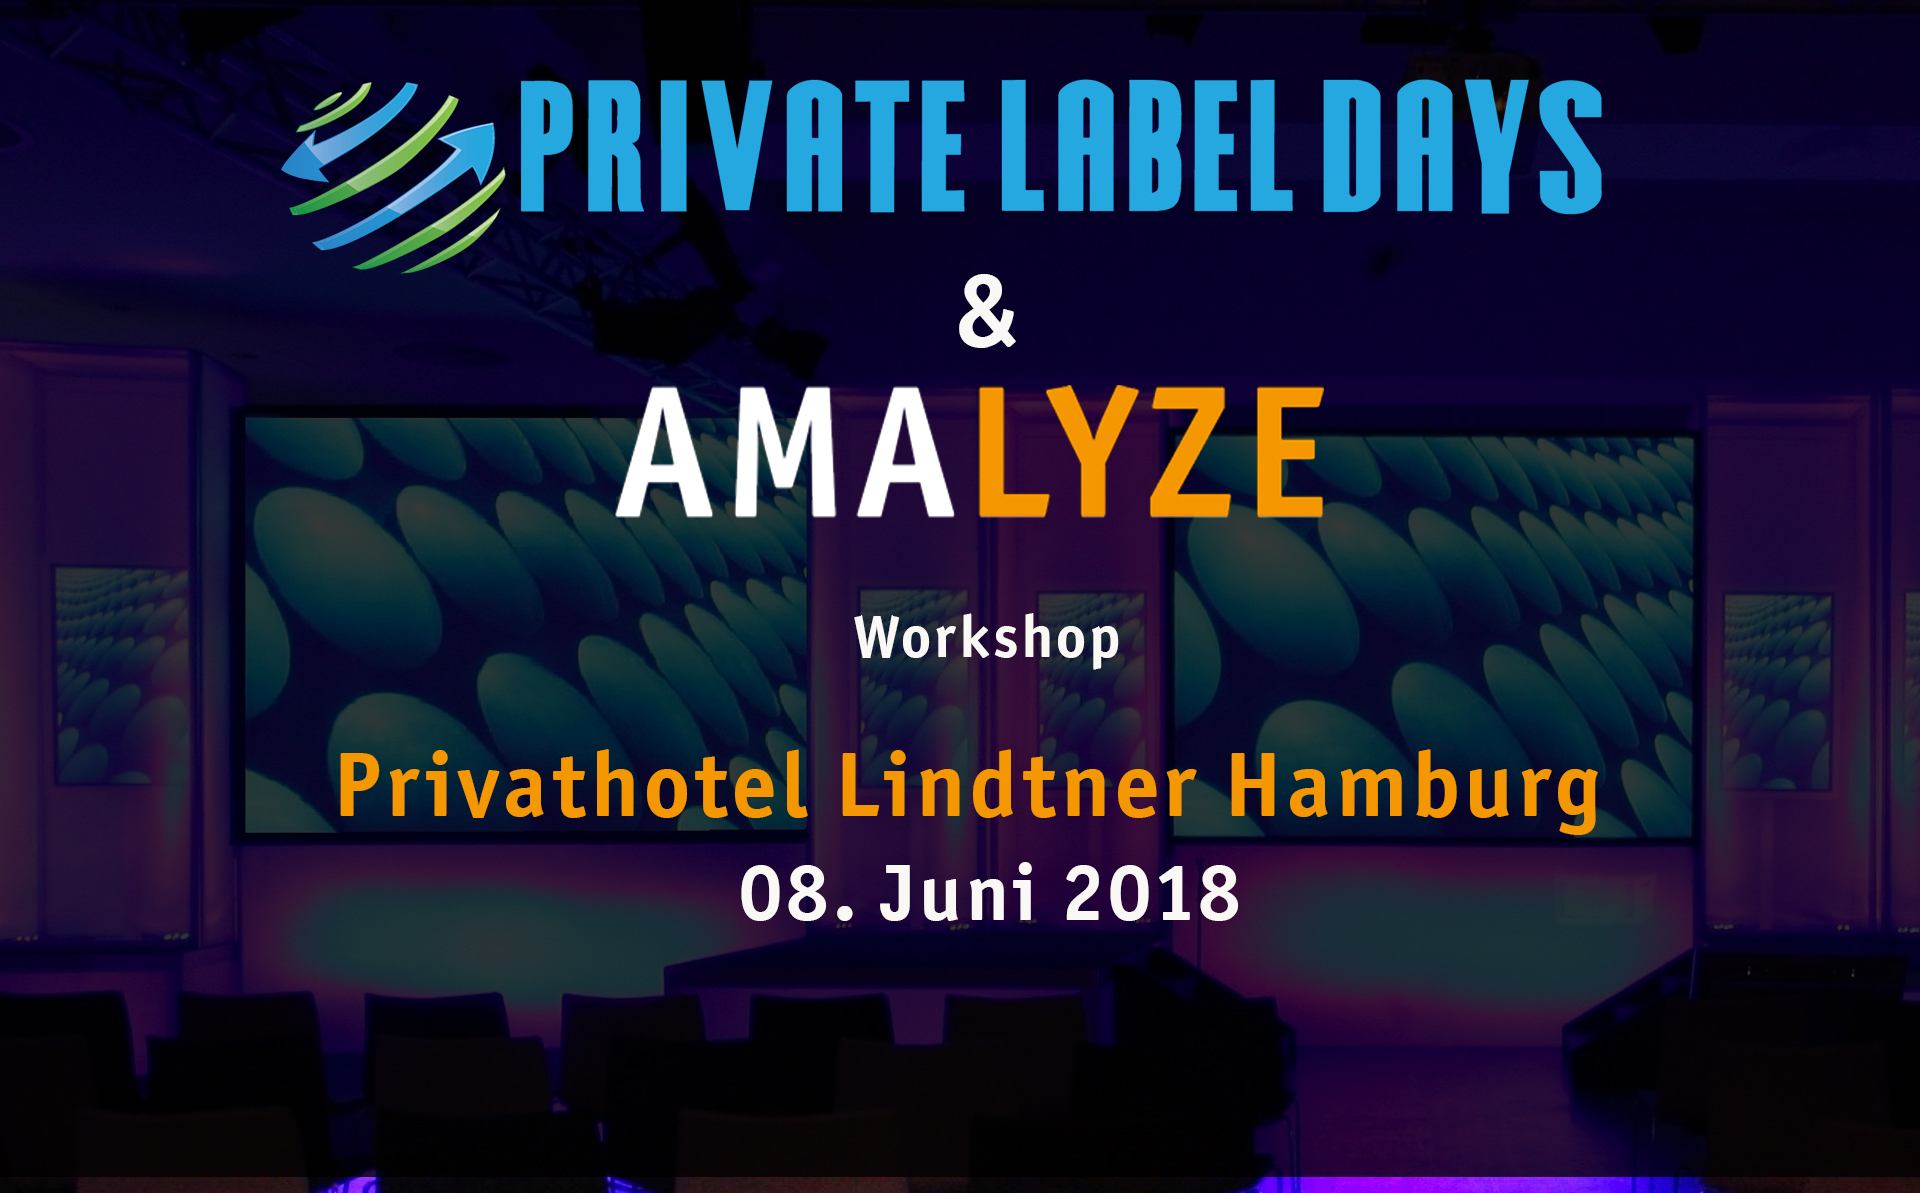 Amazon-Workshop 2018 - Private Label Days & AMALYZE